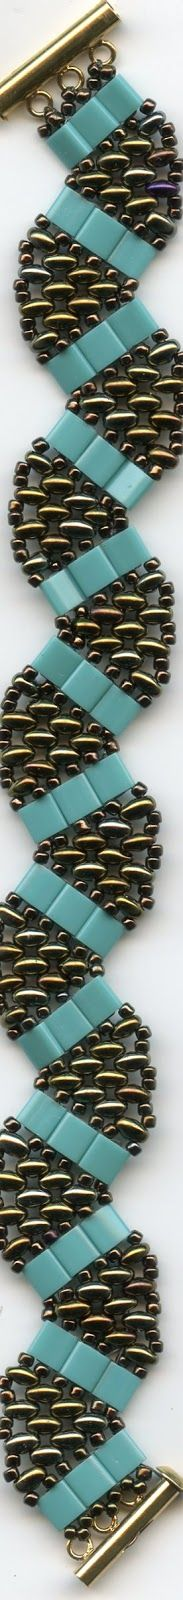 Twins and Tilas. NOTE: This doesn't link. If you look closely, the pattern might be obvious. #Seed #Bead #Tutorials